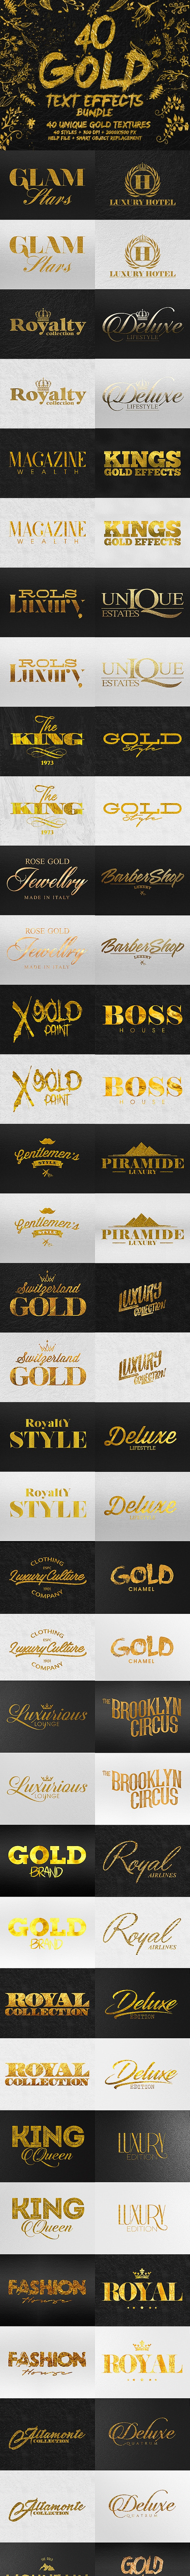 40 Gold Text Effects Bundle - Text Effects Actions